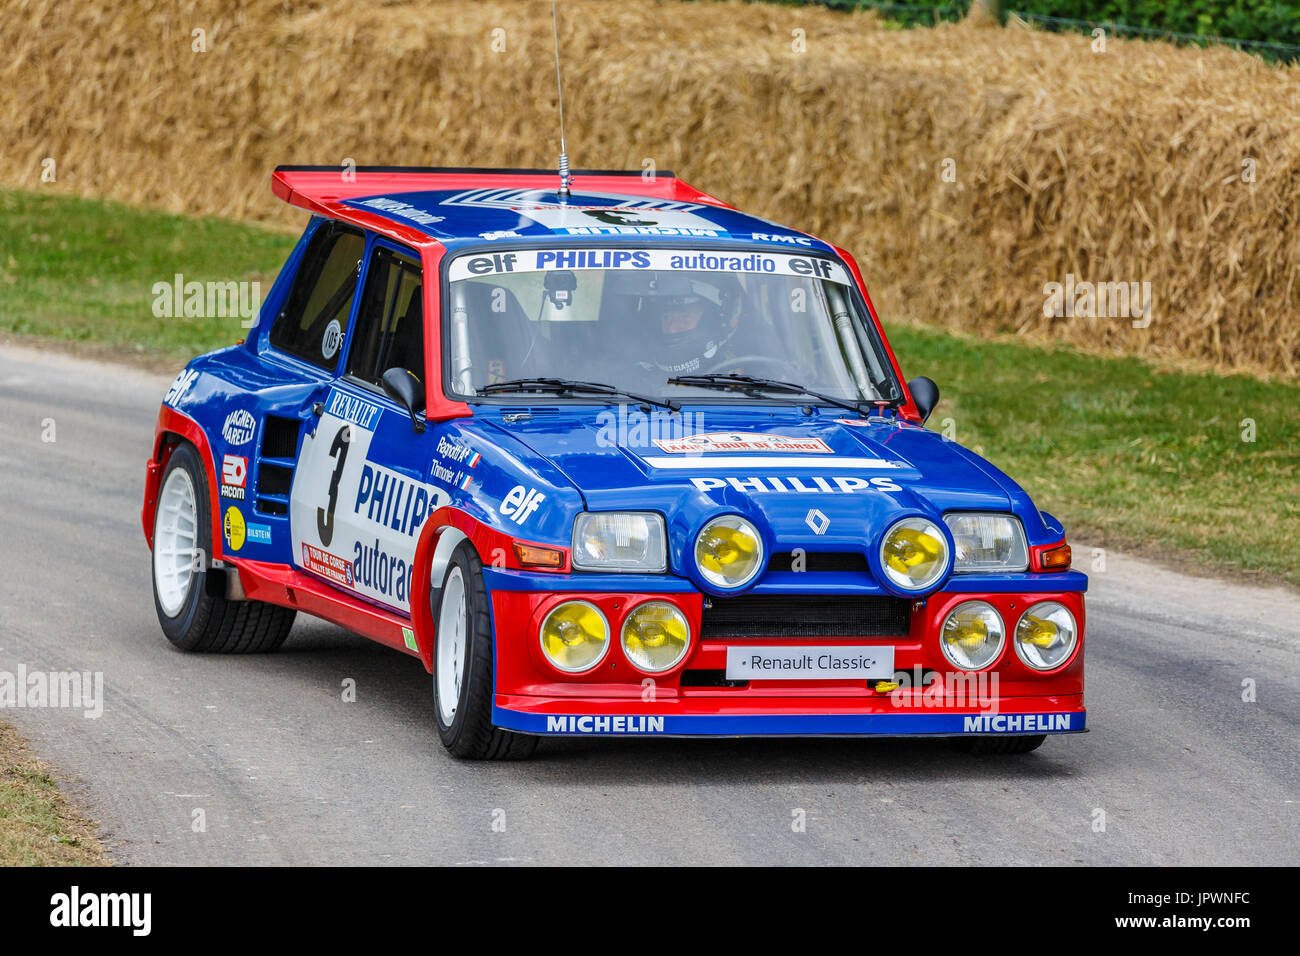 1985 Renault 5 Maxi Turbo rally car with driver Jean Ragnotti at the 2017 Goodwood Festival of Speed, Sussex, UK. - Stock Image